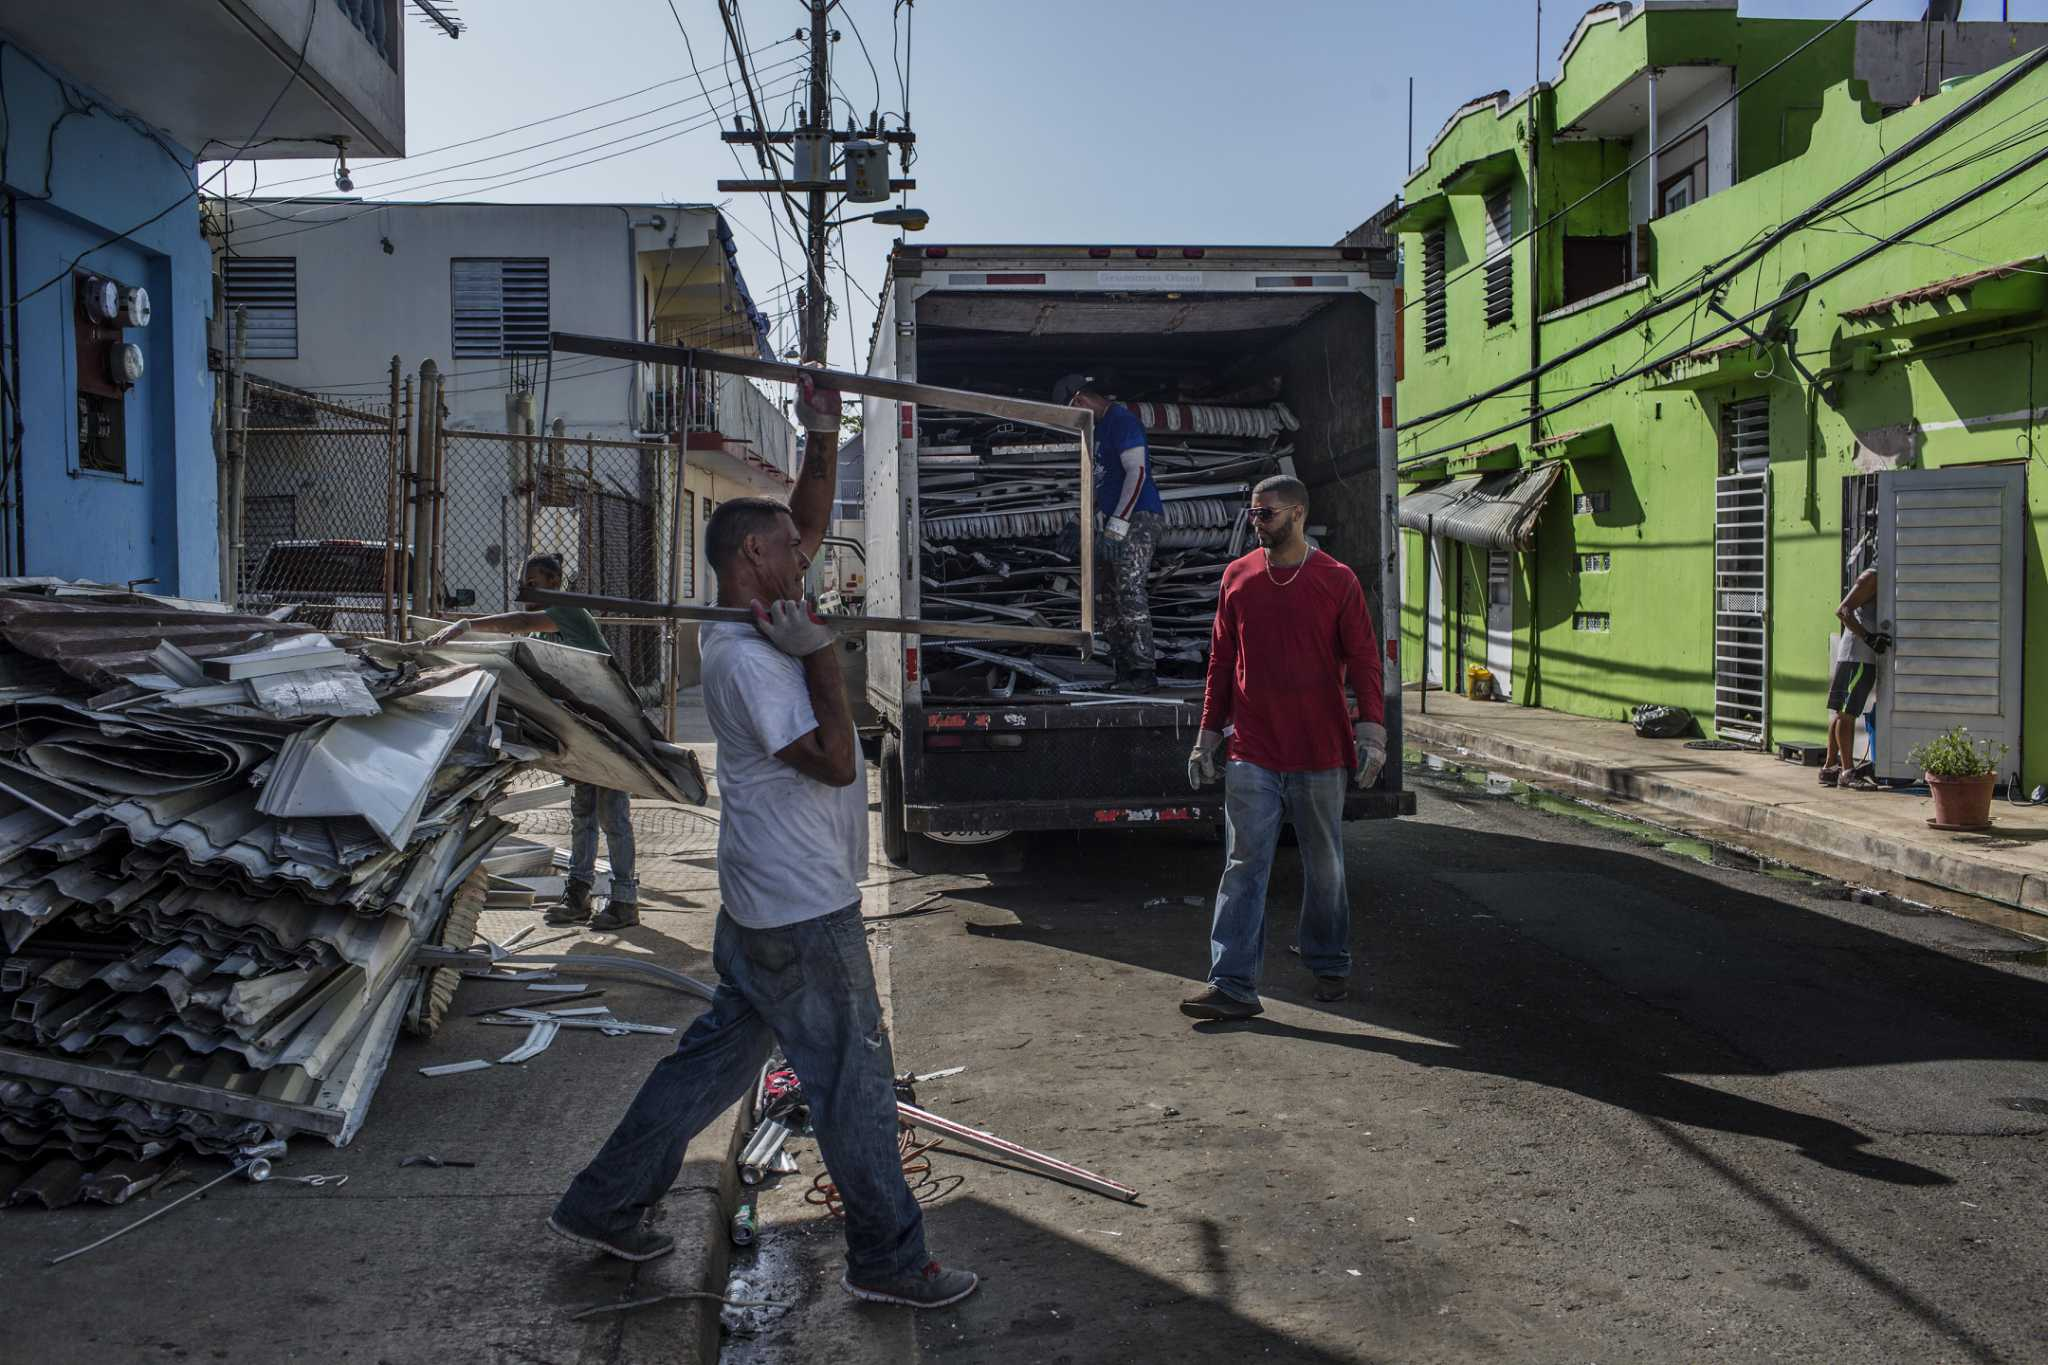 greenwich brings relief to puerto rico